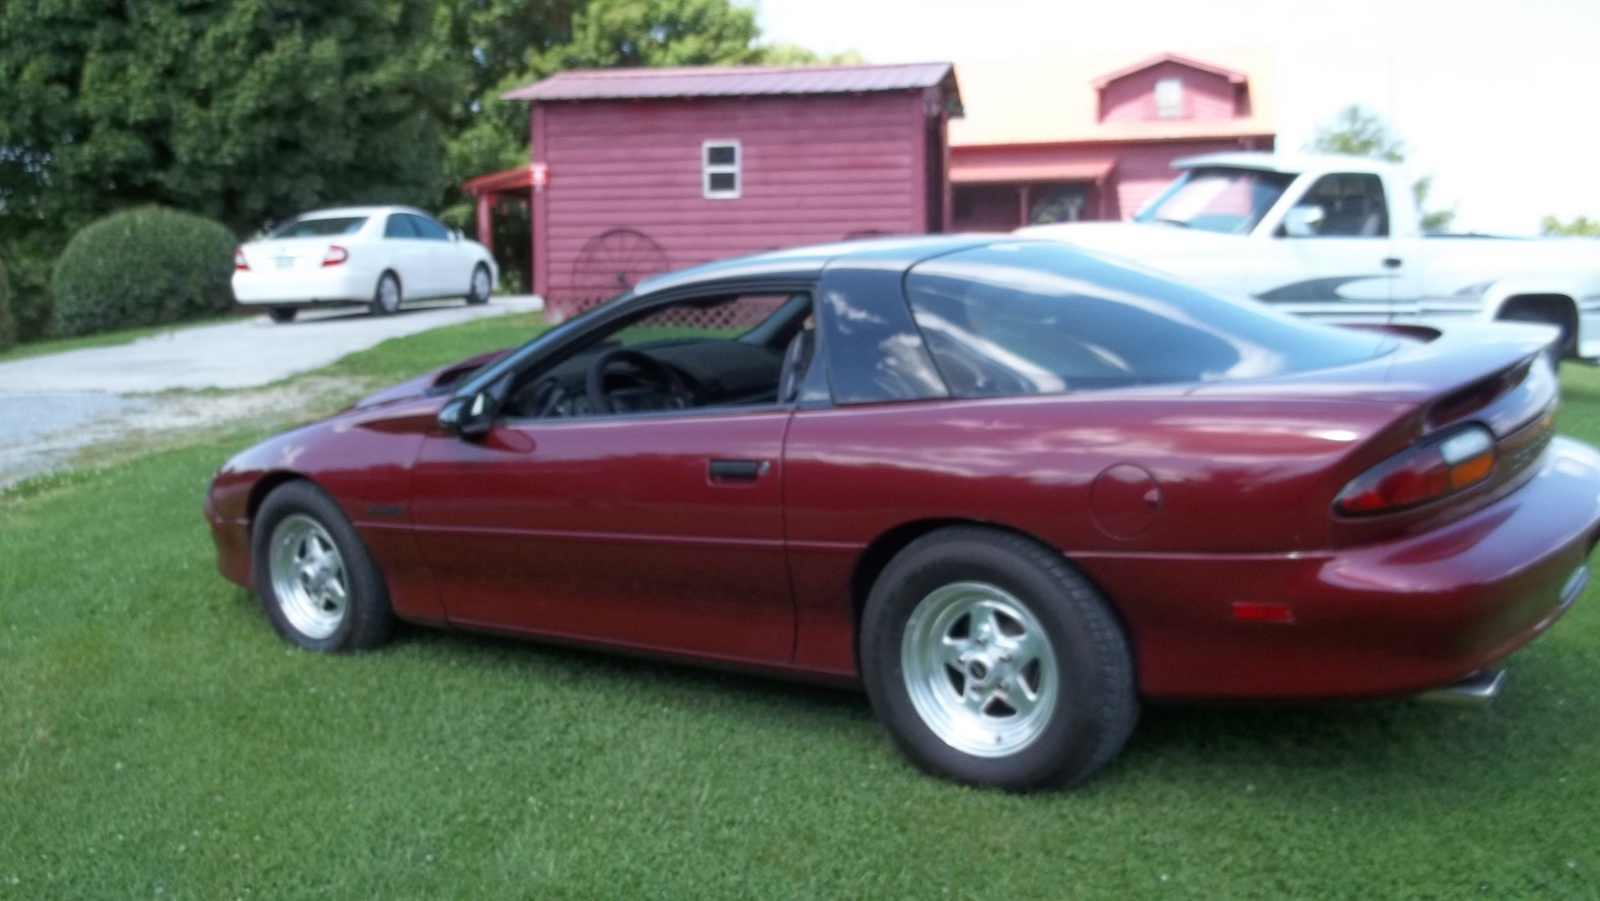 1993 Chevrolet Camaro Pictures C1000 pi36290903 further C5 Corvette Re Established Iconic Brands Clear Right Swagger further Chevrolet Corvette C7 Stingray 2014 Widescreen Wallpaper Ds02 I5273 moreover Test Drive 2016 Chevy Corvette Stingray Z51 Review also 1973 Chevrolet Corvette Pictures C438 pi36237097. on 2000 chevy corvette